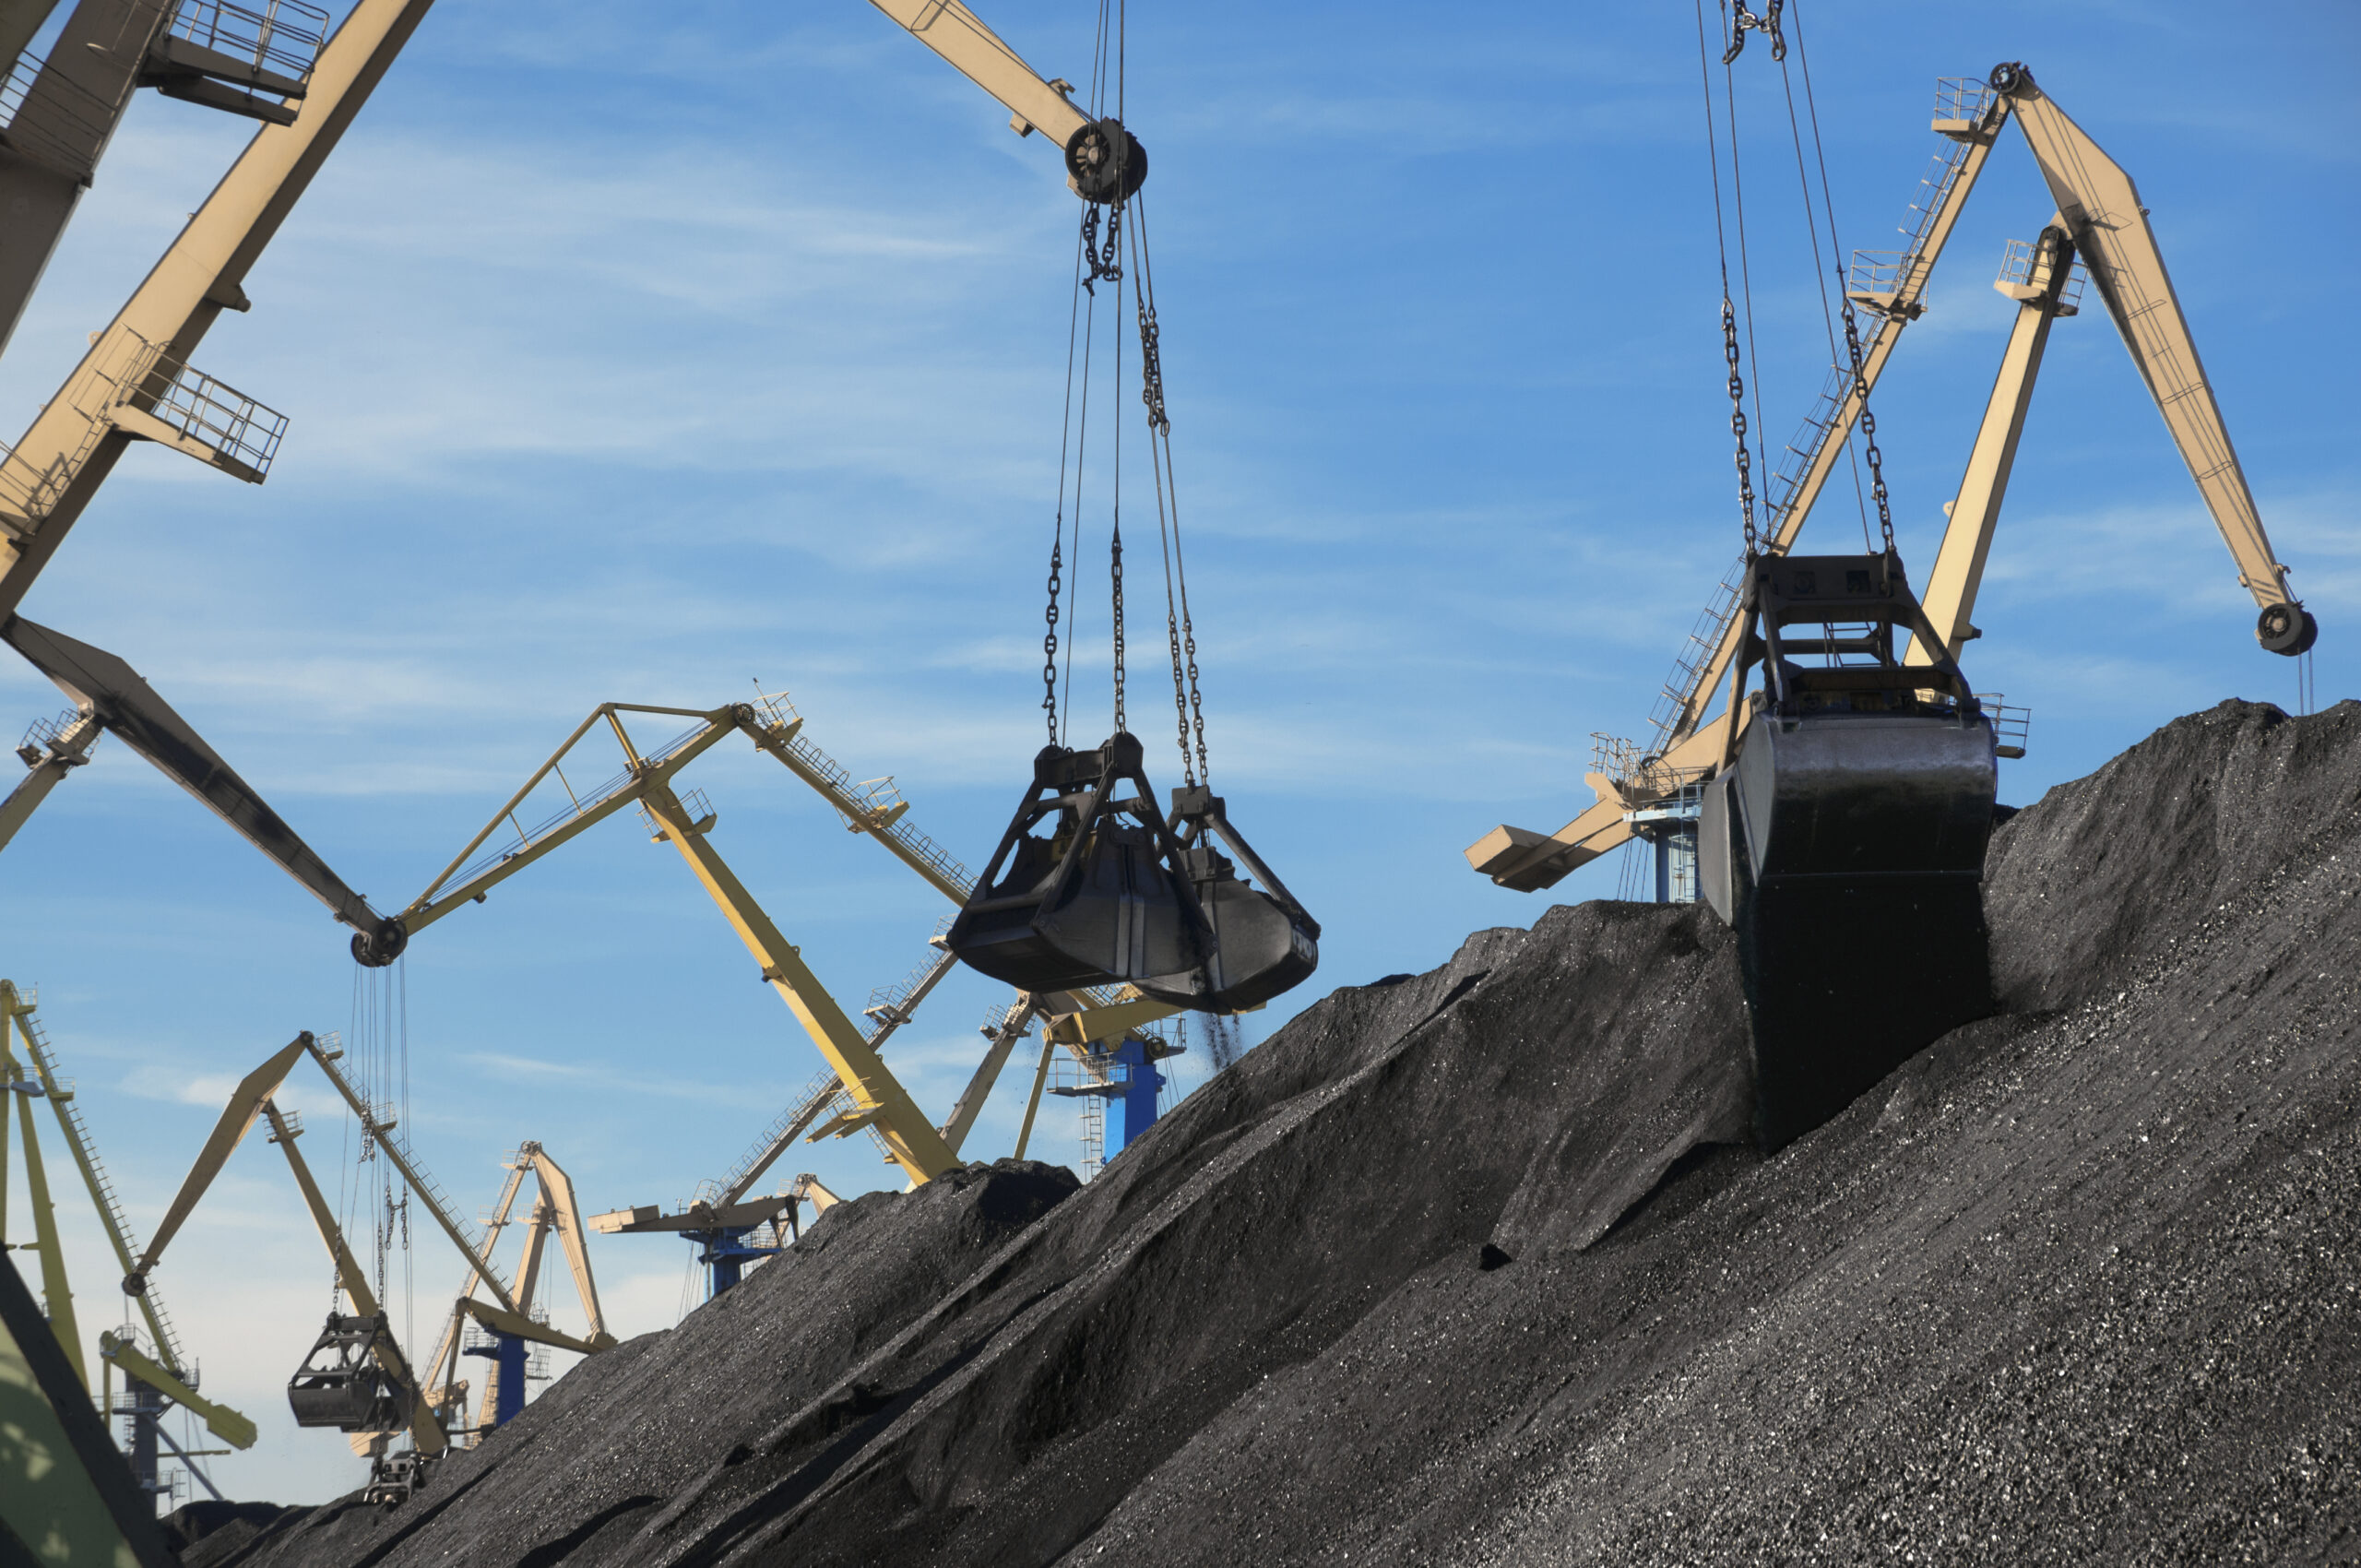 Vanguard's own goal: Carbon-heavy holdings and $3trn climate risk